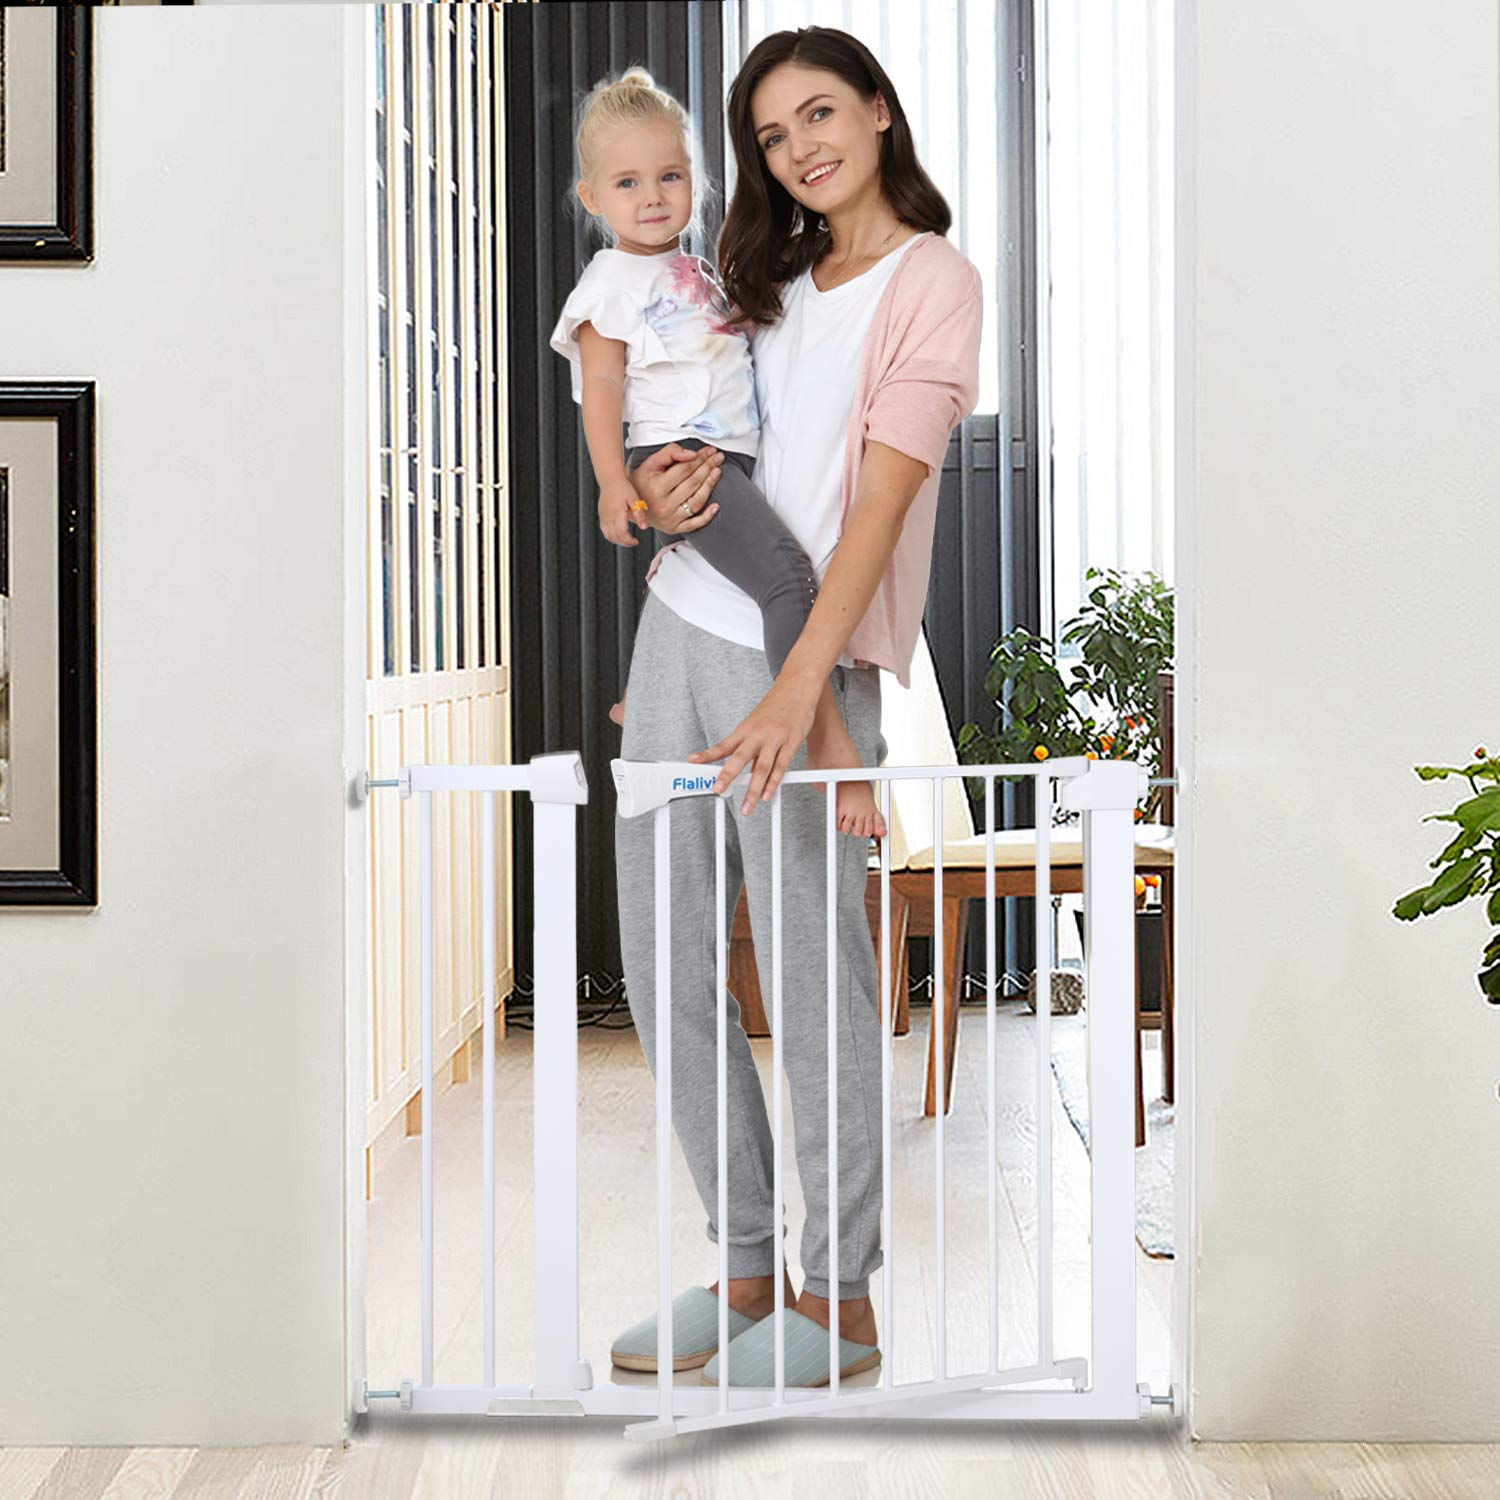 Safety Baby Gate,29.5-40.5 inch Auto Close Features,Luxury Extra Tall&Wide Child Gate, Heavy-Duty gate, Easy Walk-Thru pet Gate for The House, Stairs, Doorways & Hallways. (Applicable 29.5''-40.5'') by KINGMAZI